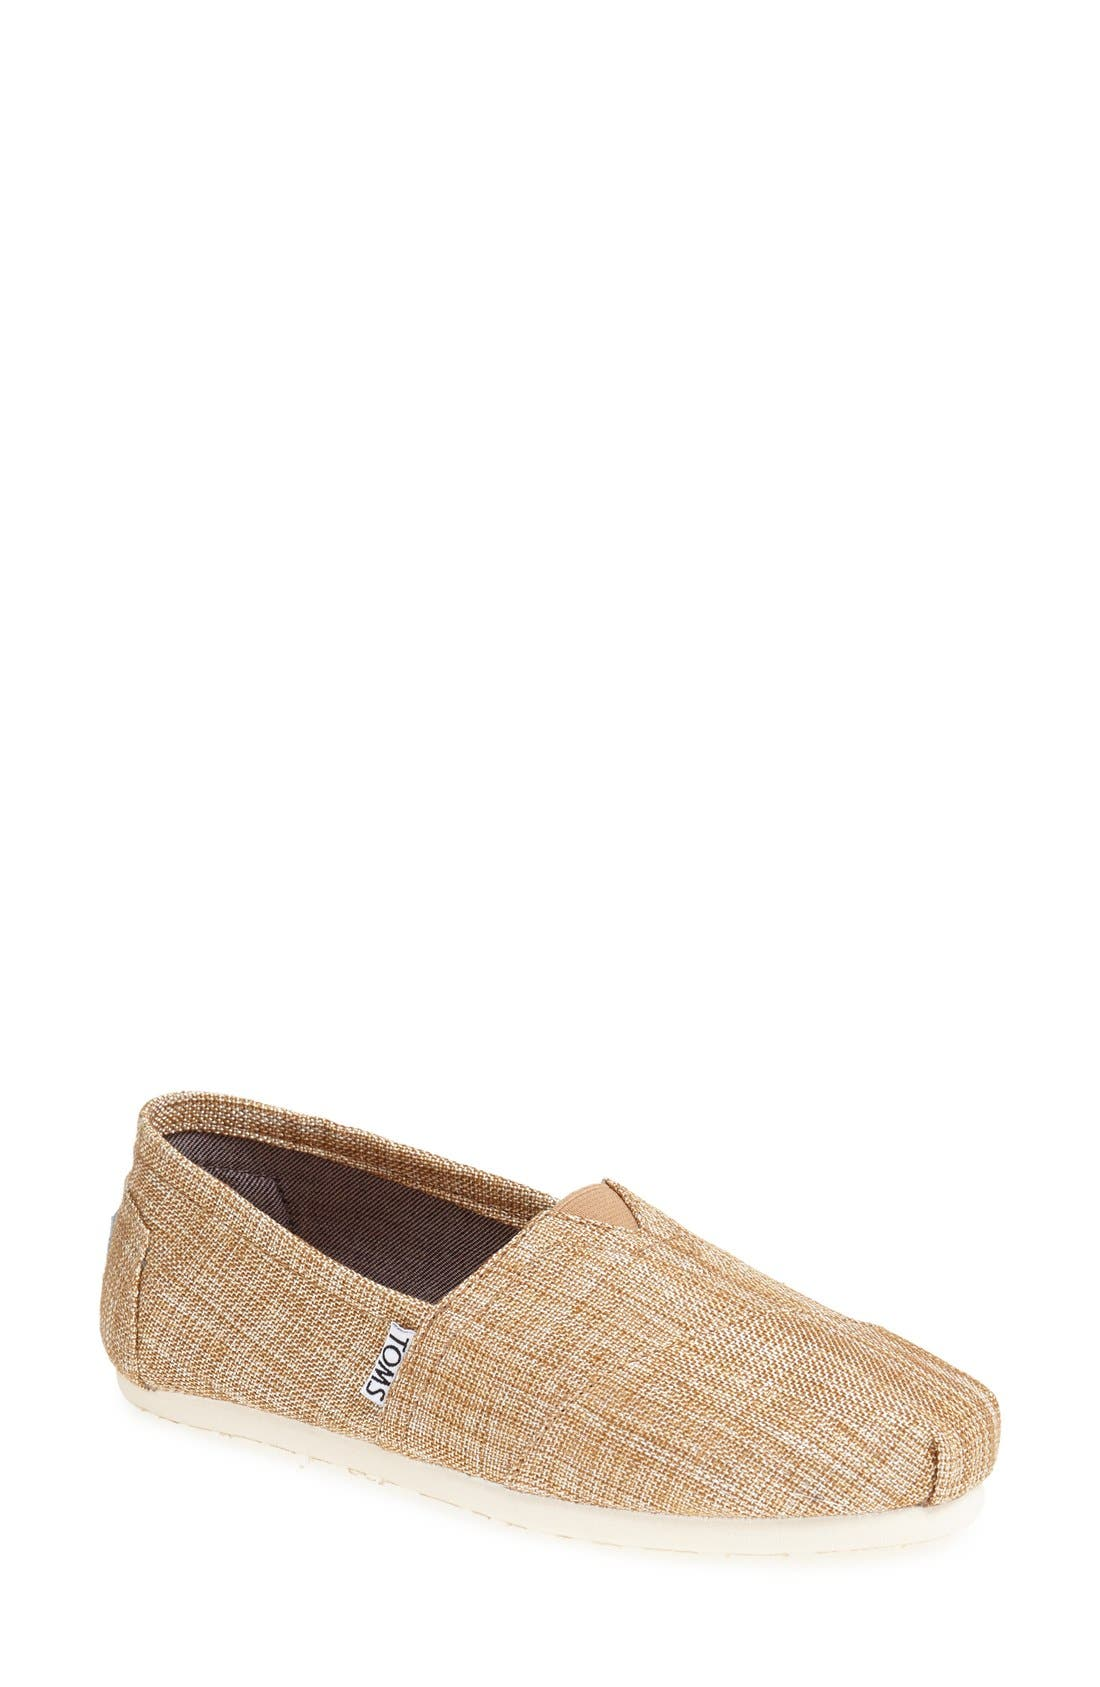 Alternate Image 1 Selected - TOMS 'Classic' Metallic Burlap Slip-On (Women)